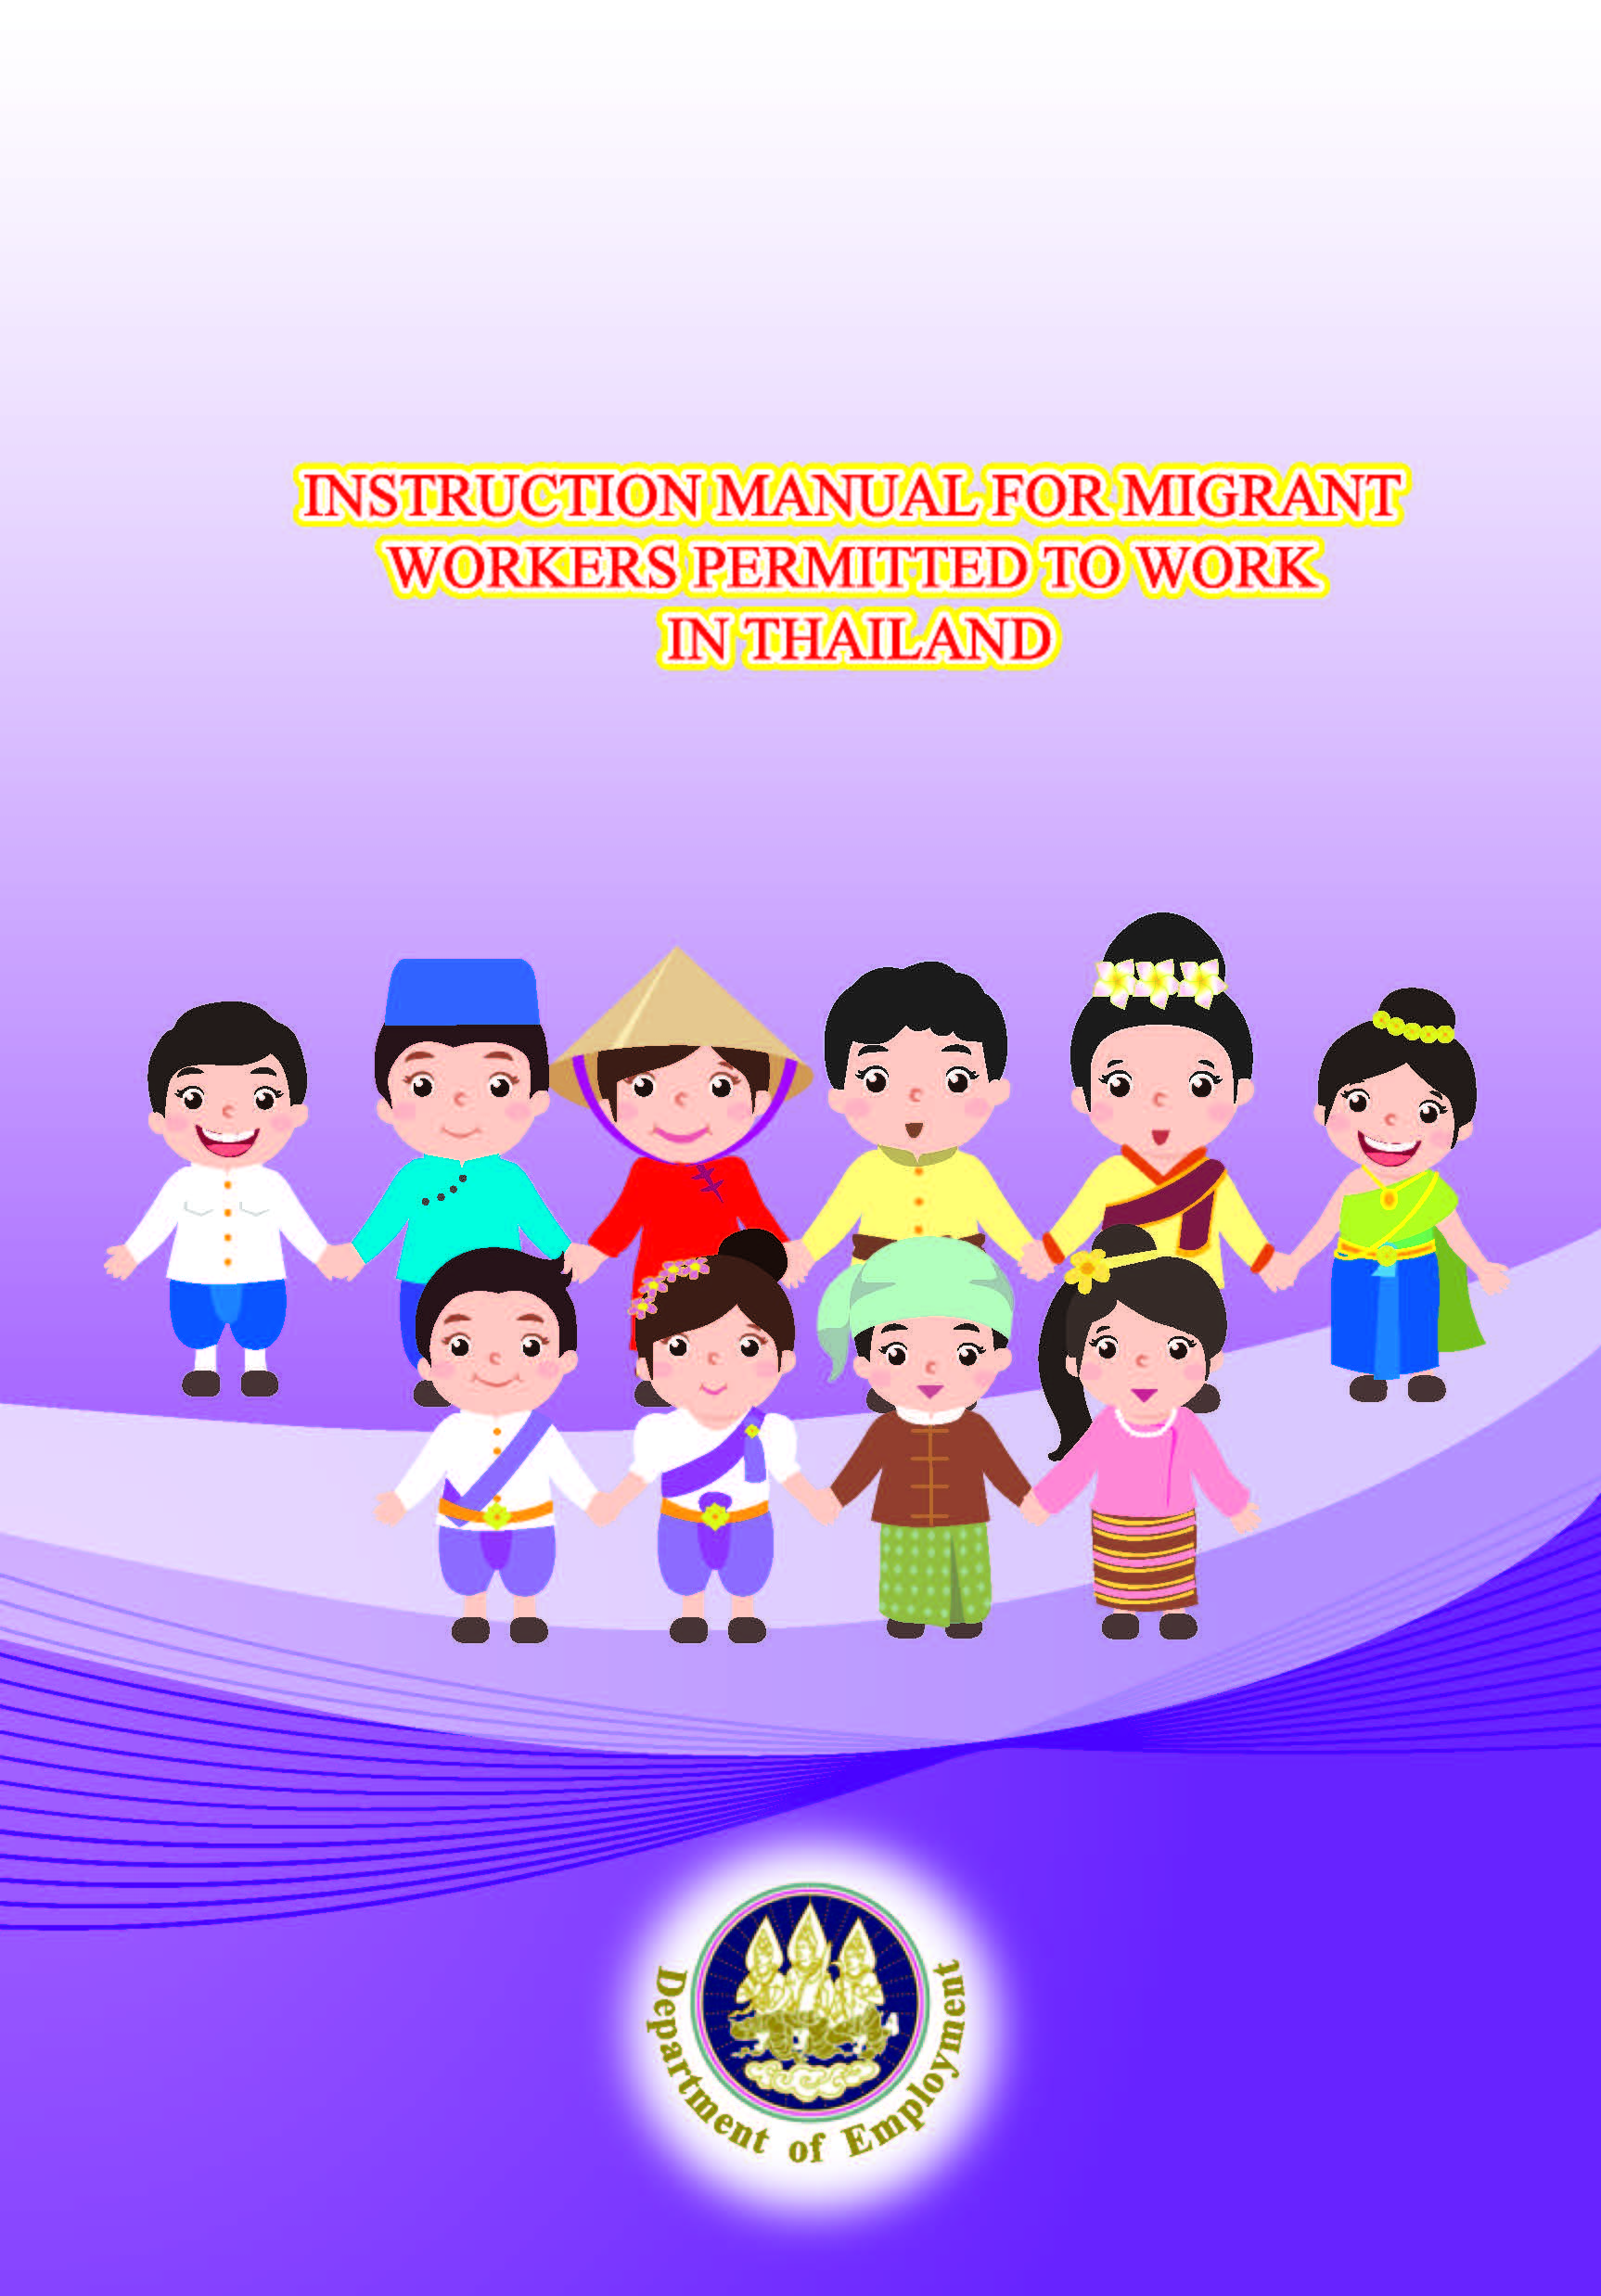 Instruction manual for migrant workers permitted to work in Thailand